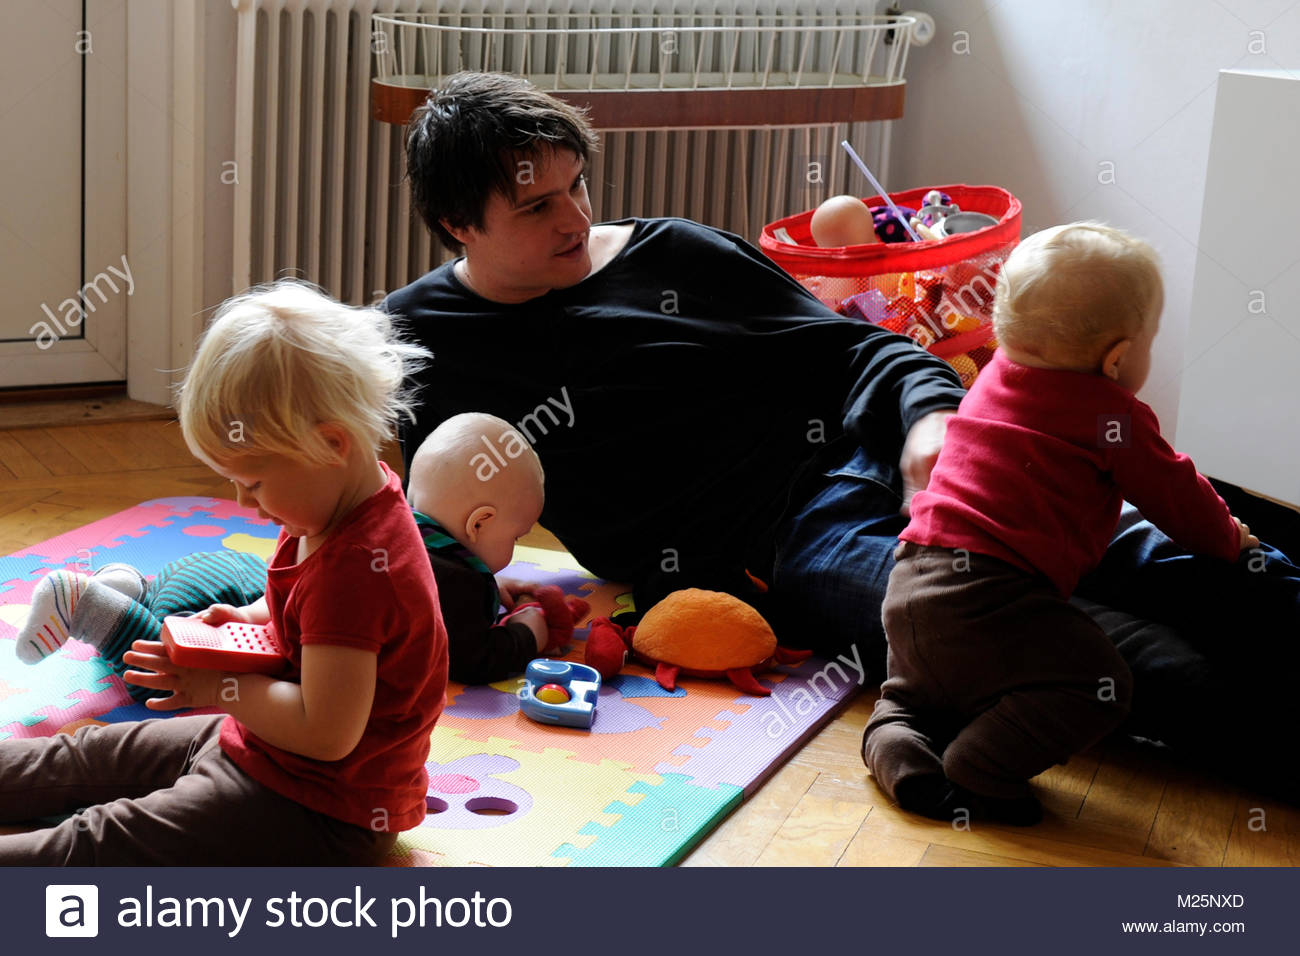 fathers on parental leave - Stock Image